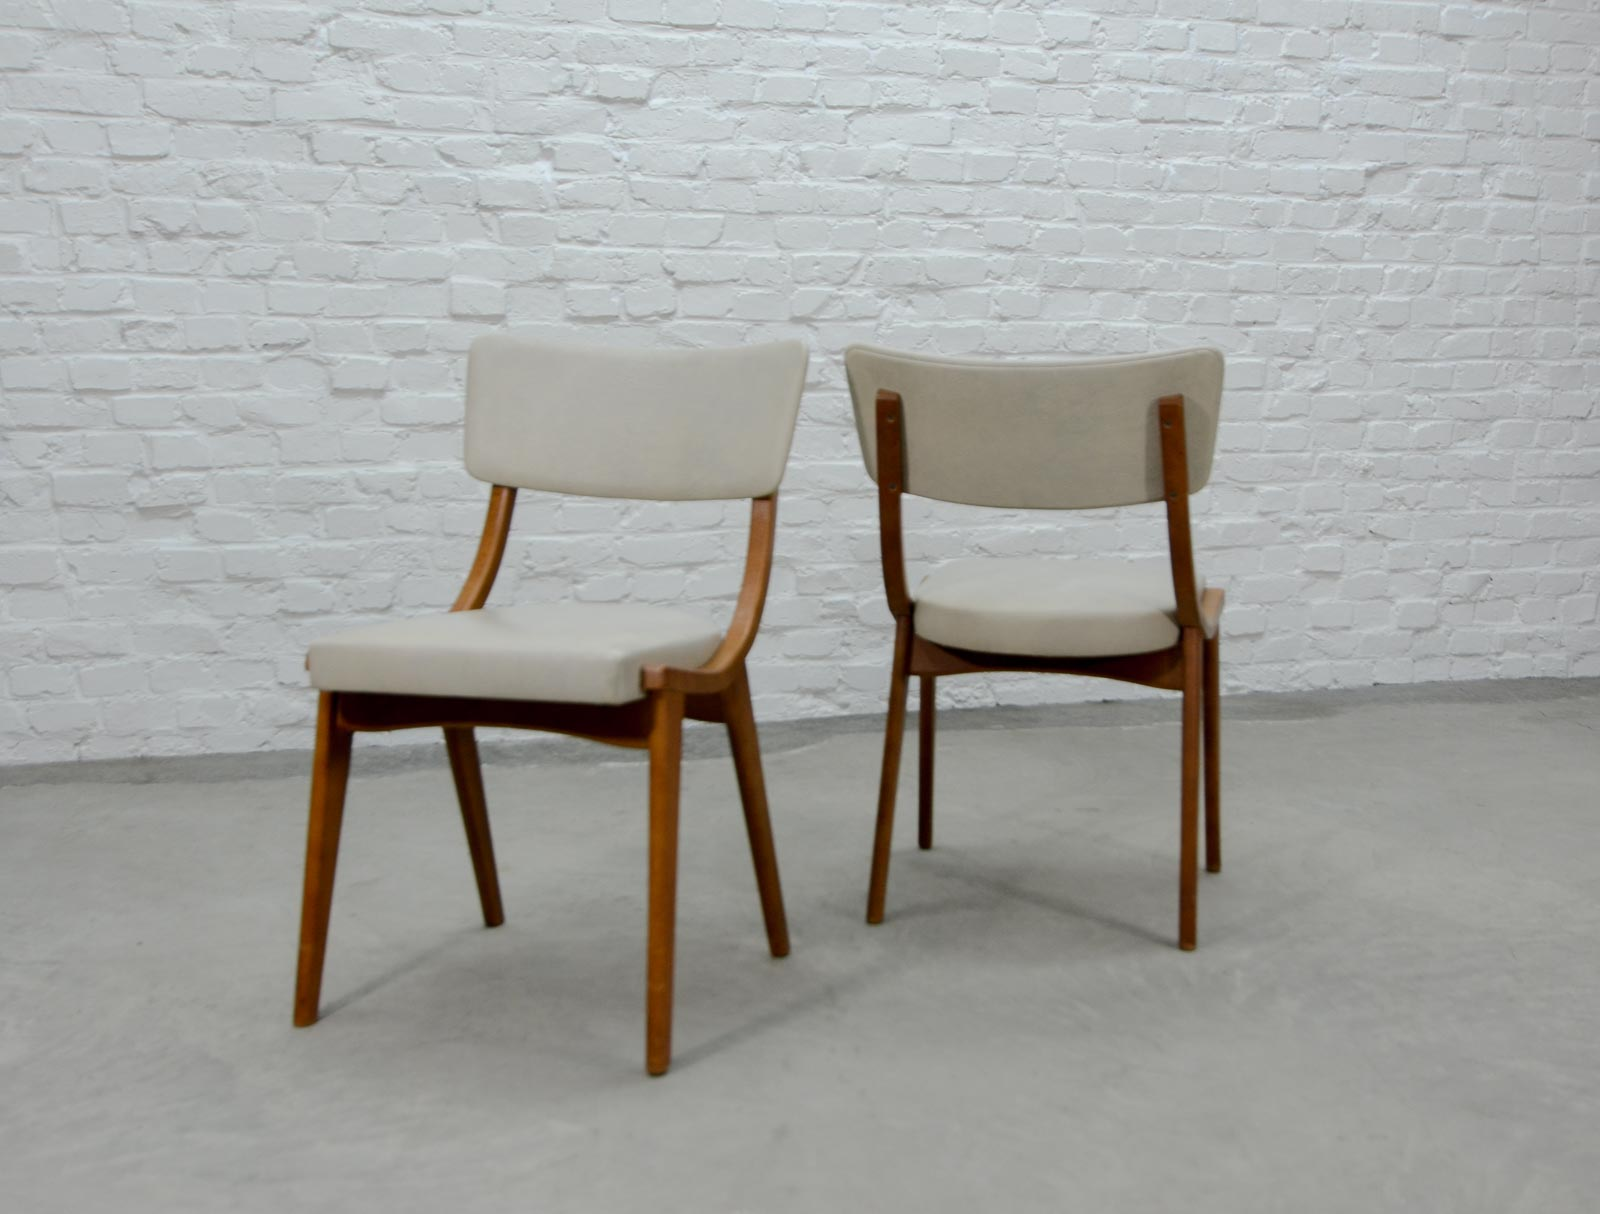 Pair of Beech Wooden Scandinavian Dining Chairs with White Leatherette Upholstery 1960s & Pair of Beech Wooden Scandinavian Dining Chairs with White ...